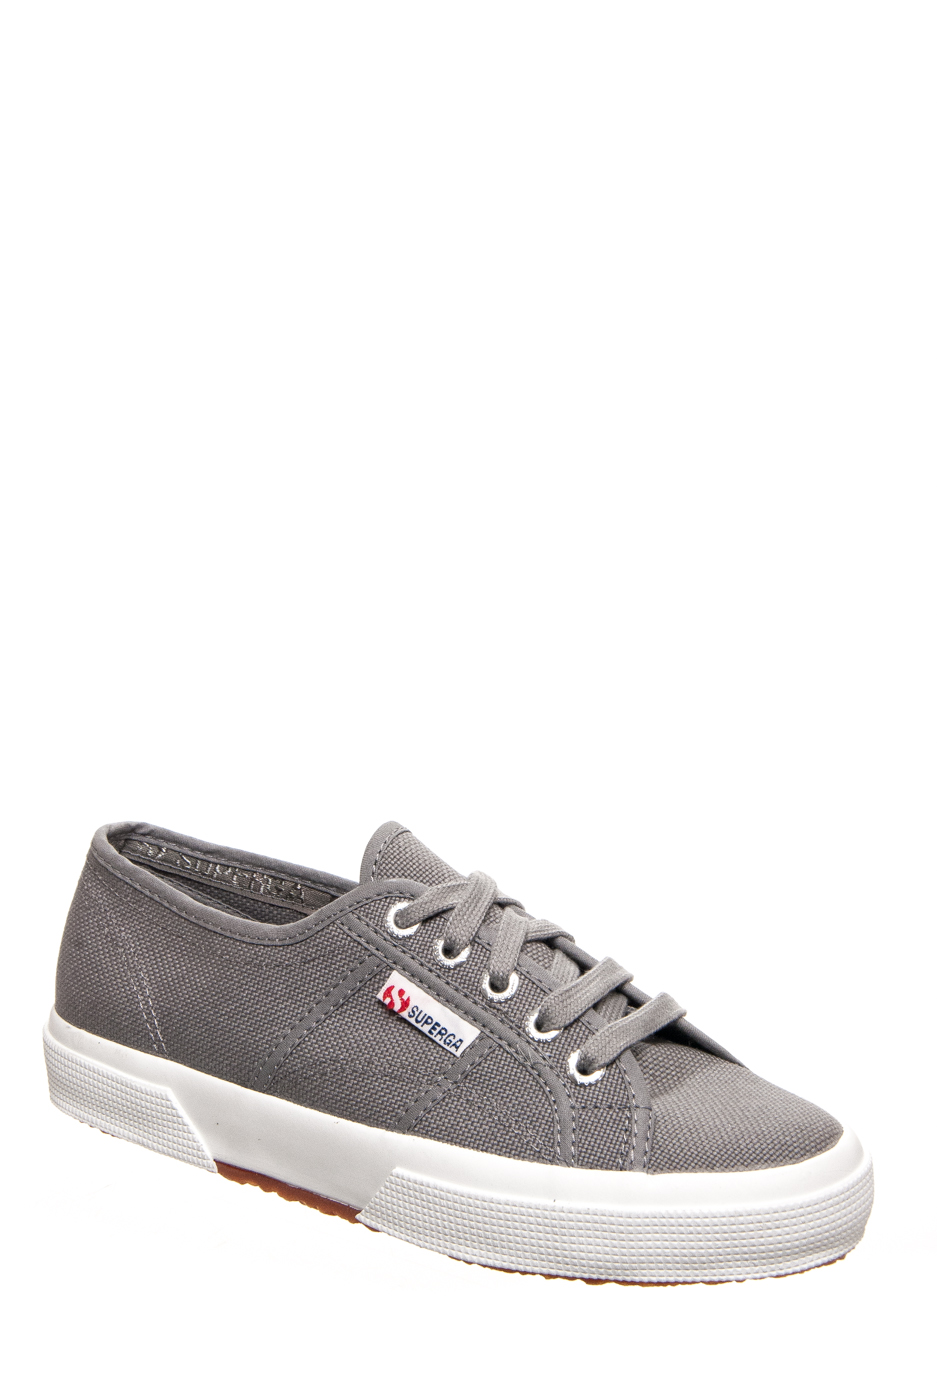 SUPERGA 2750 Cotu Classic Low Top Sneakers - Grey Sage